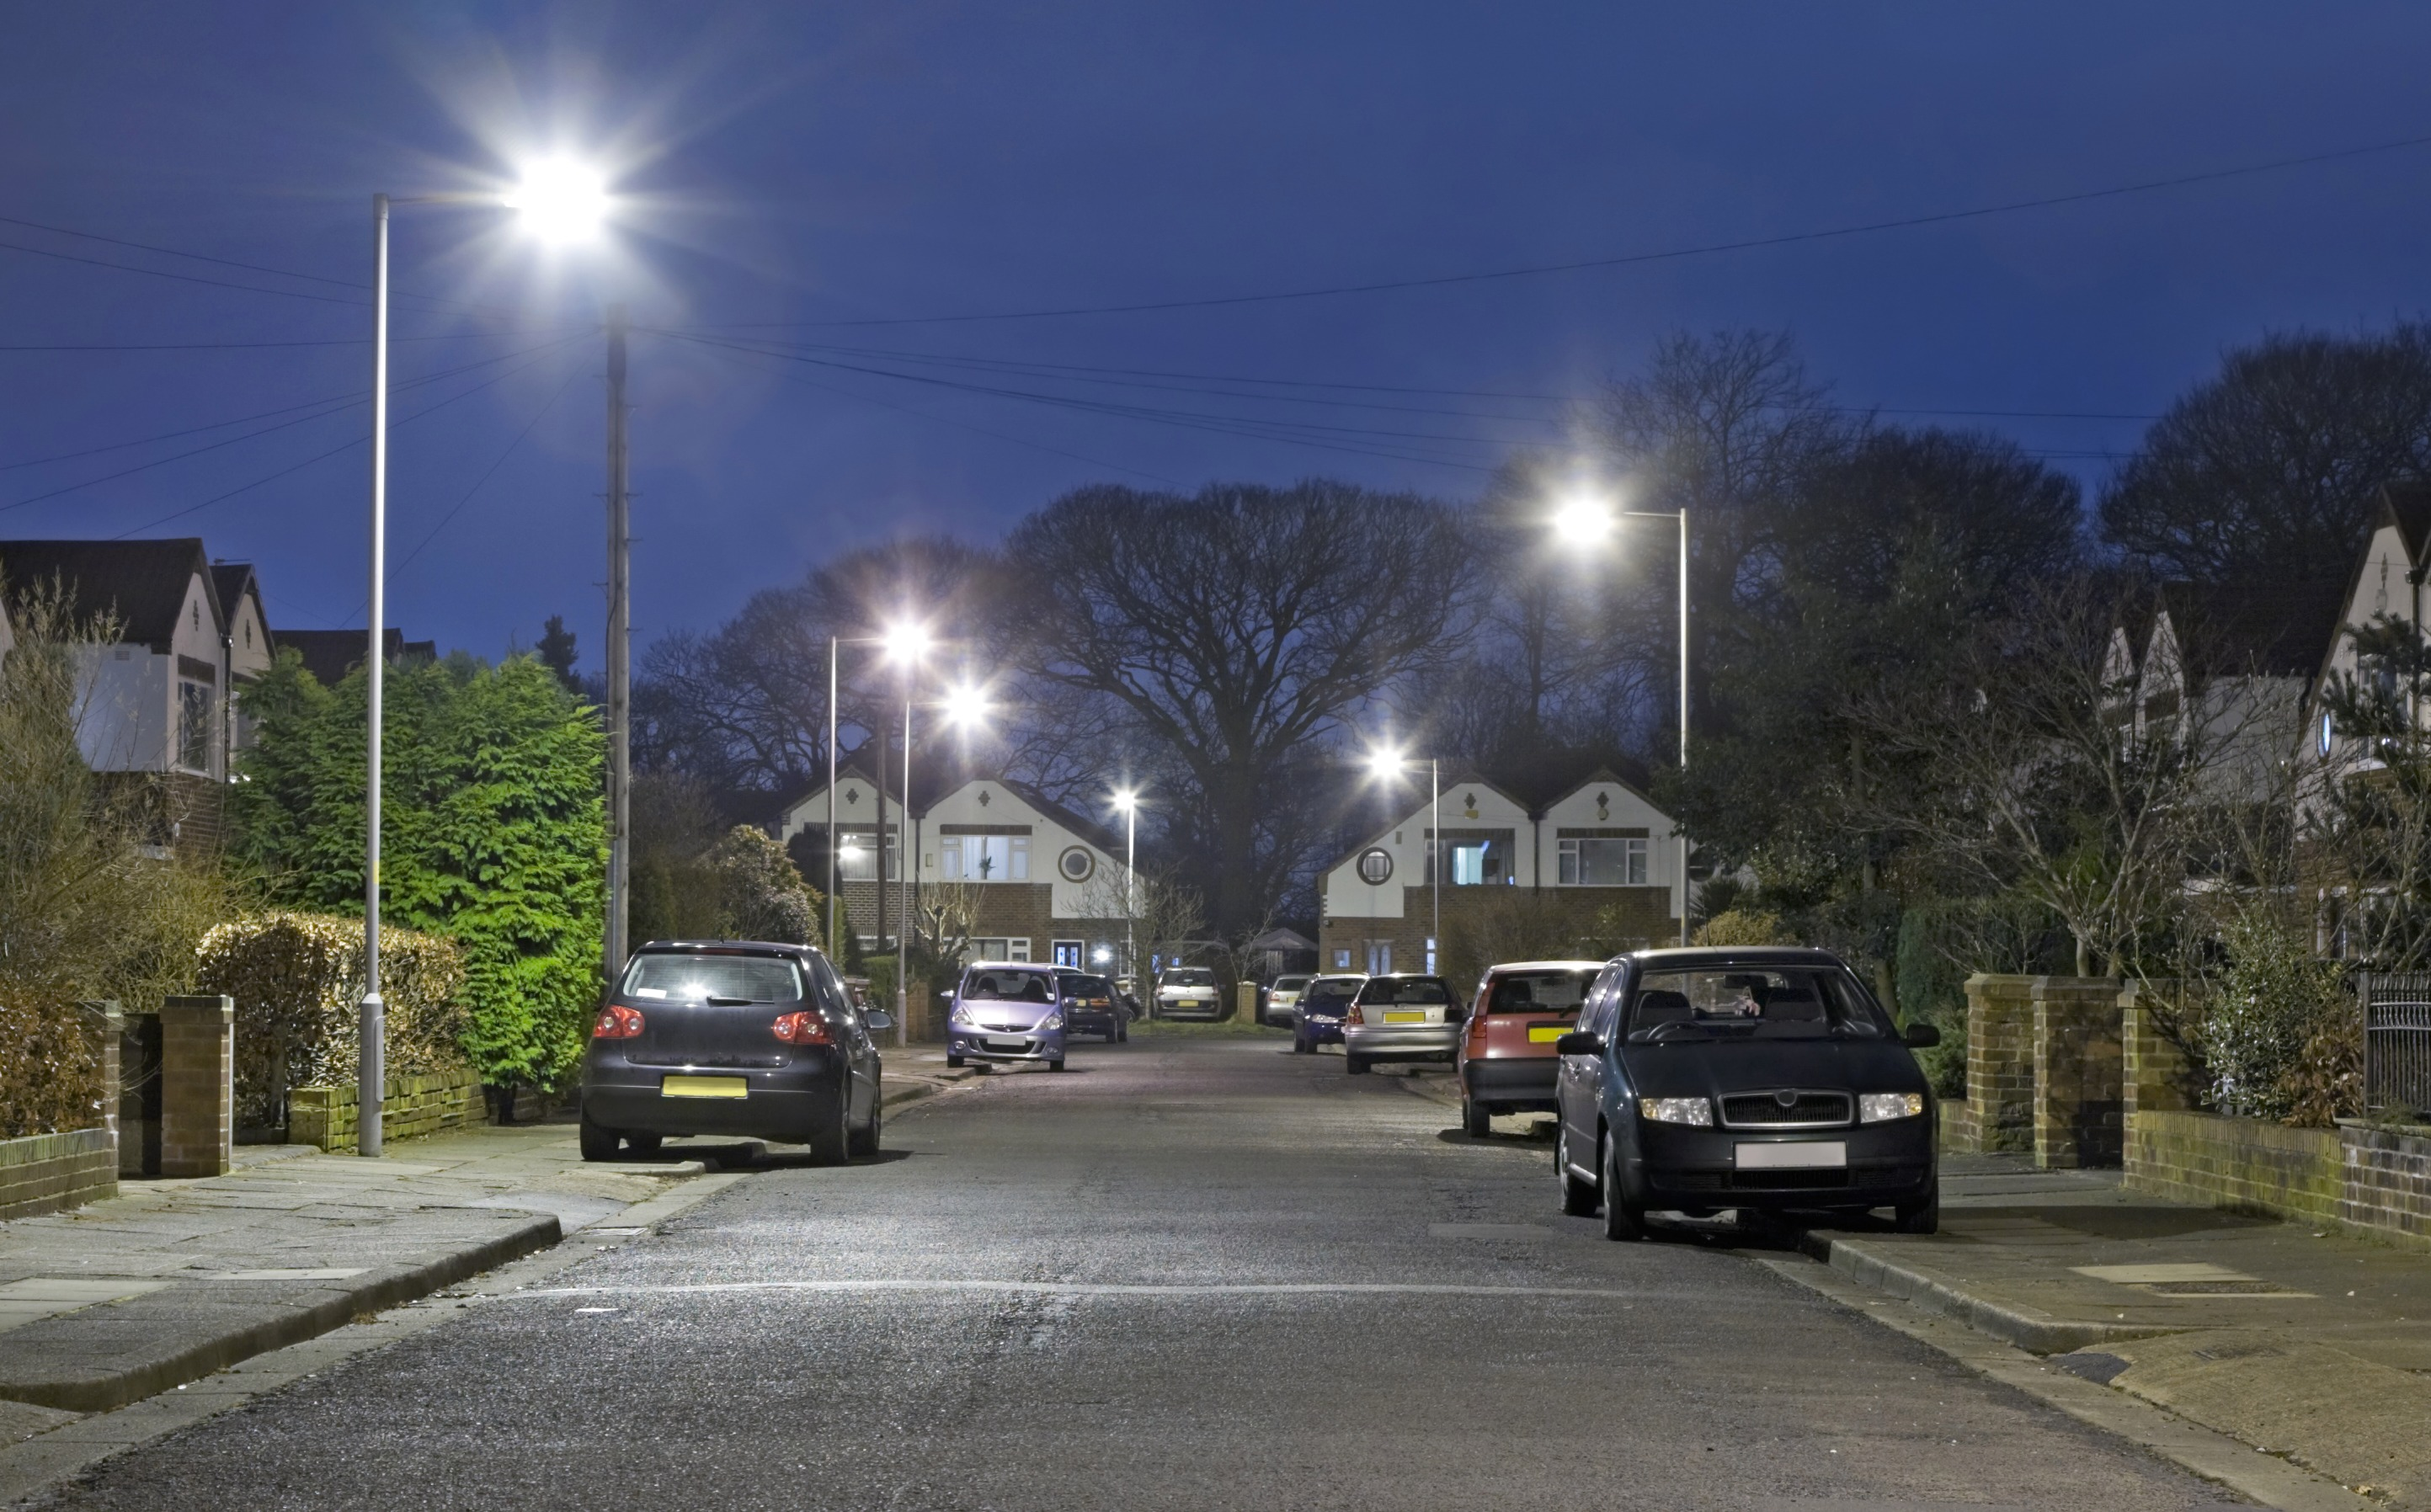 Parking against the direction of traffic at night could see you fined £1,000